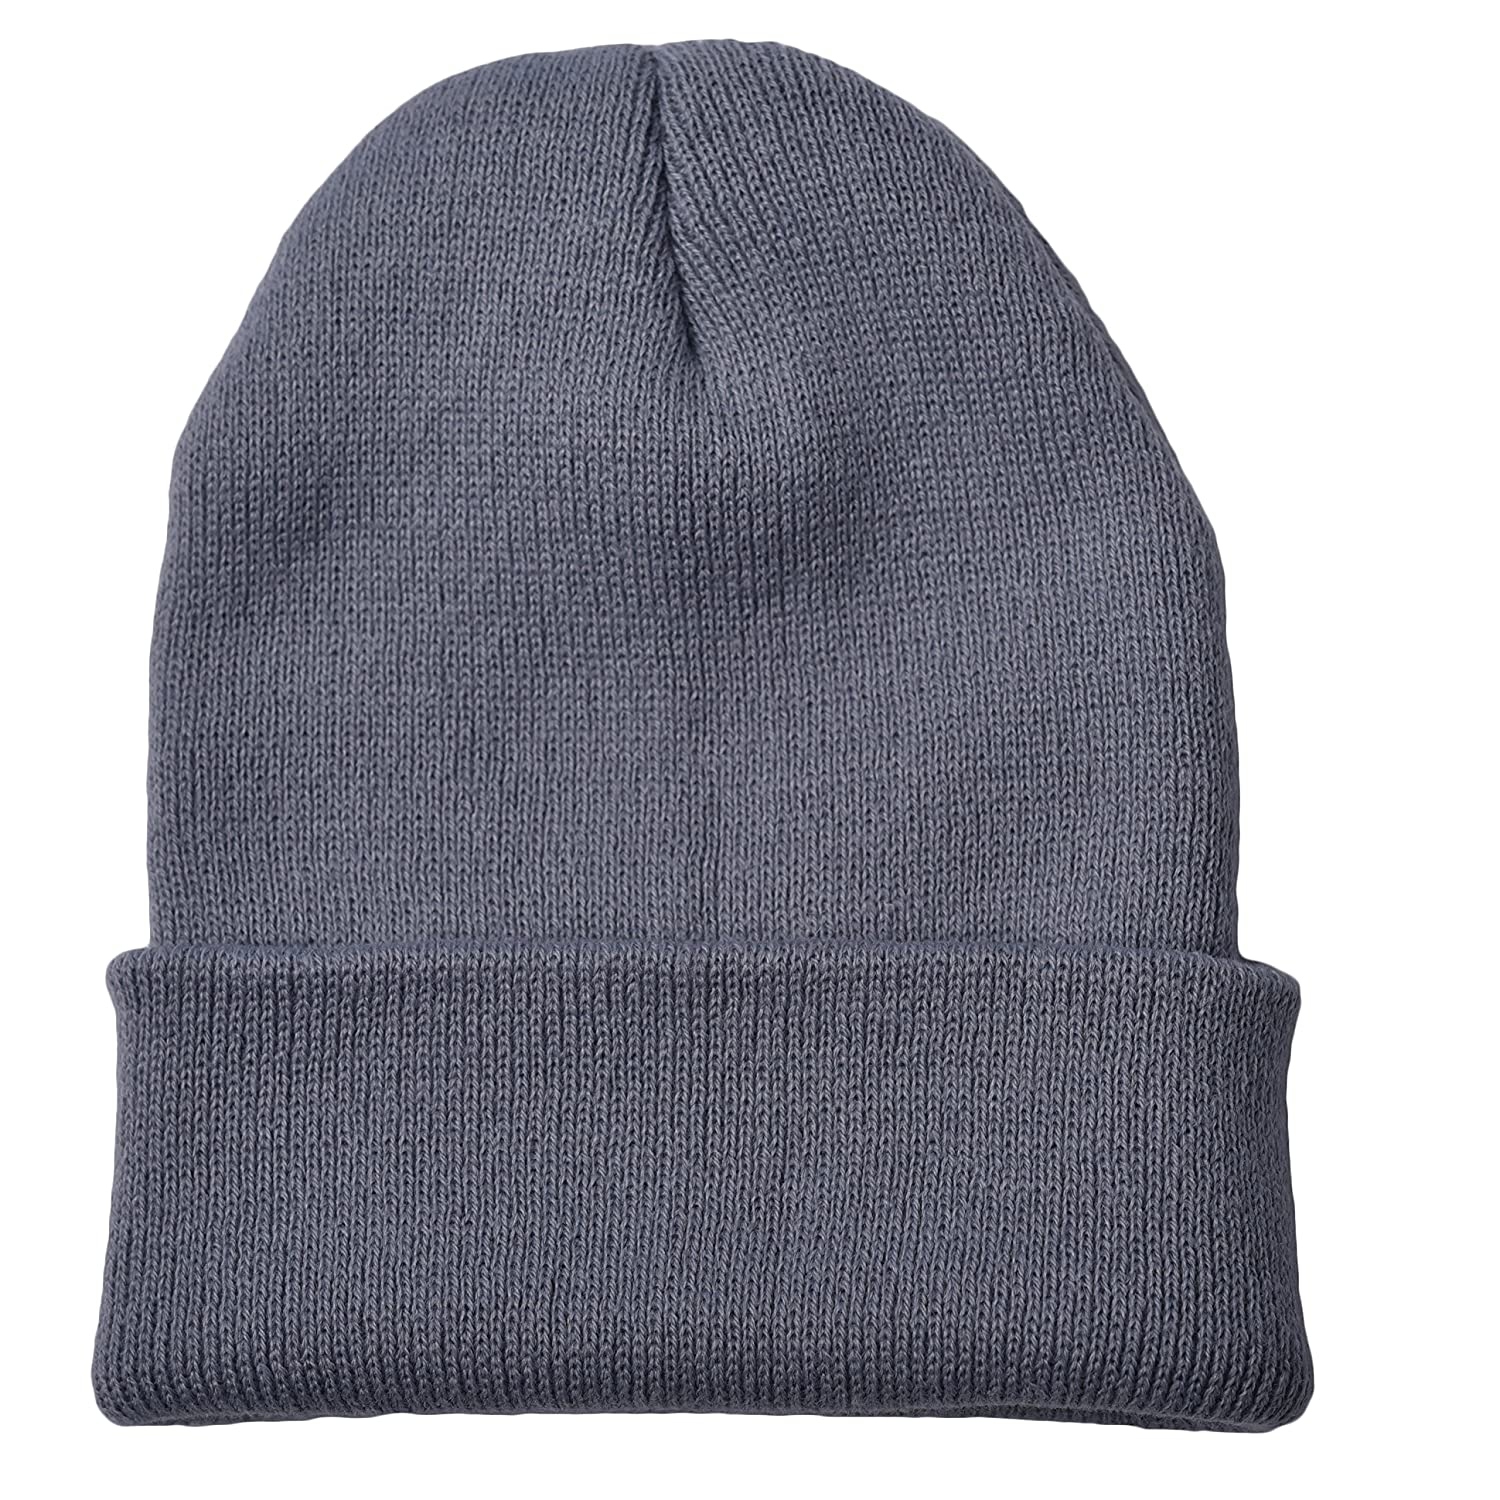 Dark Gray Woogwin Beanie Cap Winter Hats for Men Women Knitted Warm Hat Solid Color